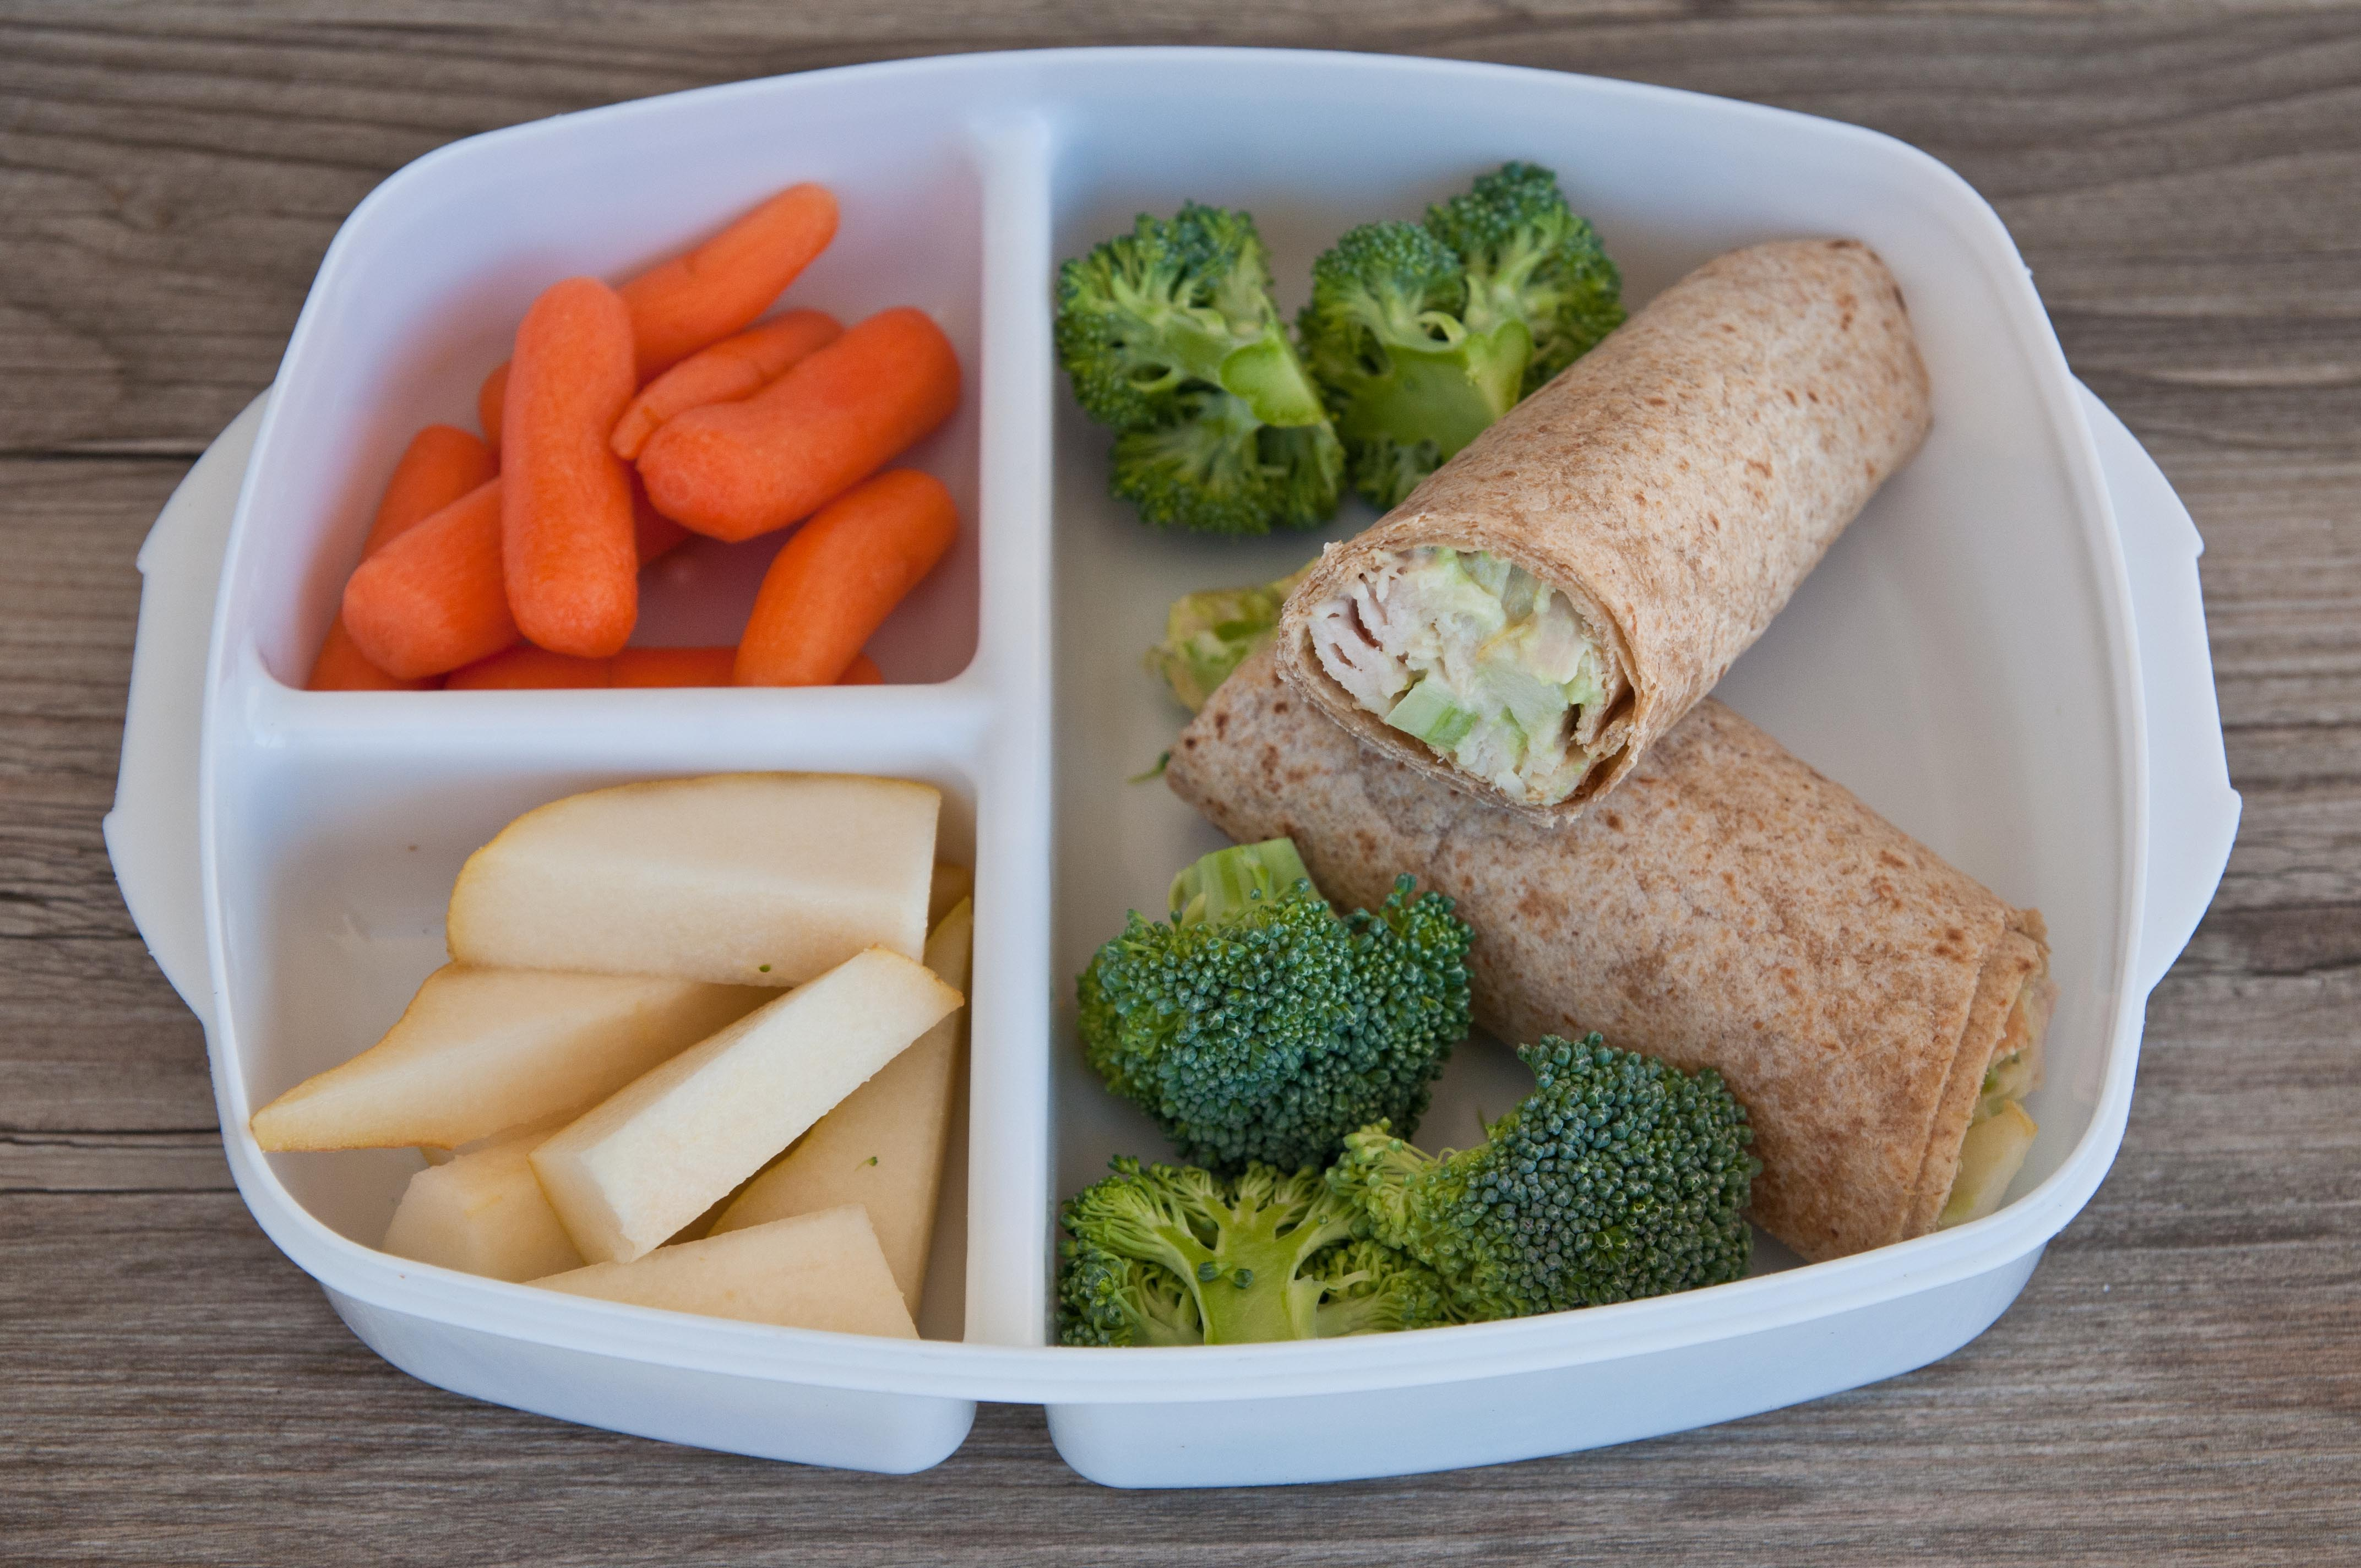 Discussion on this topic: How to Pack Healthier School Lunches, how-to-pack-healthier-school-lunches/